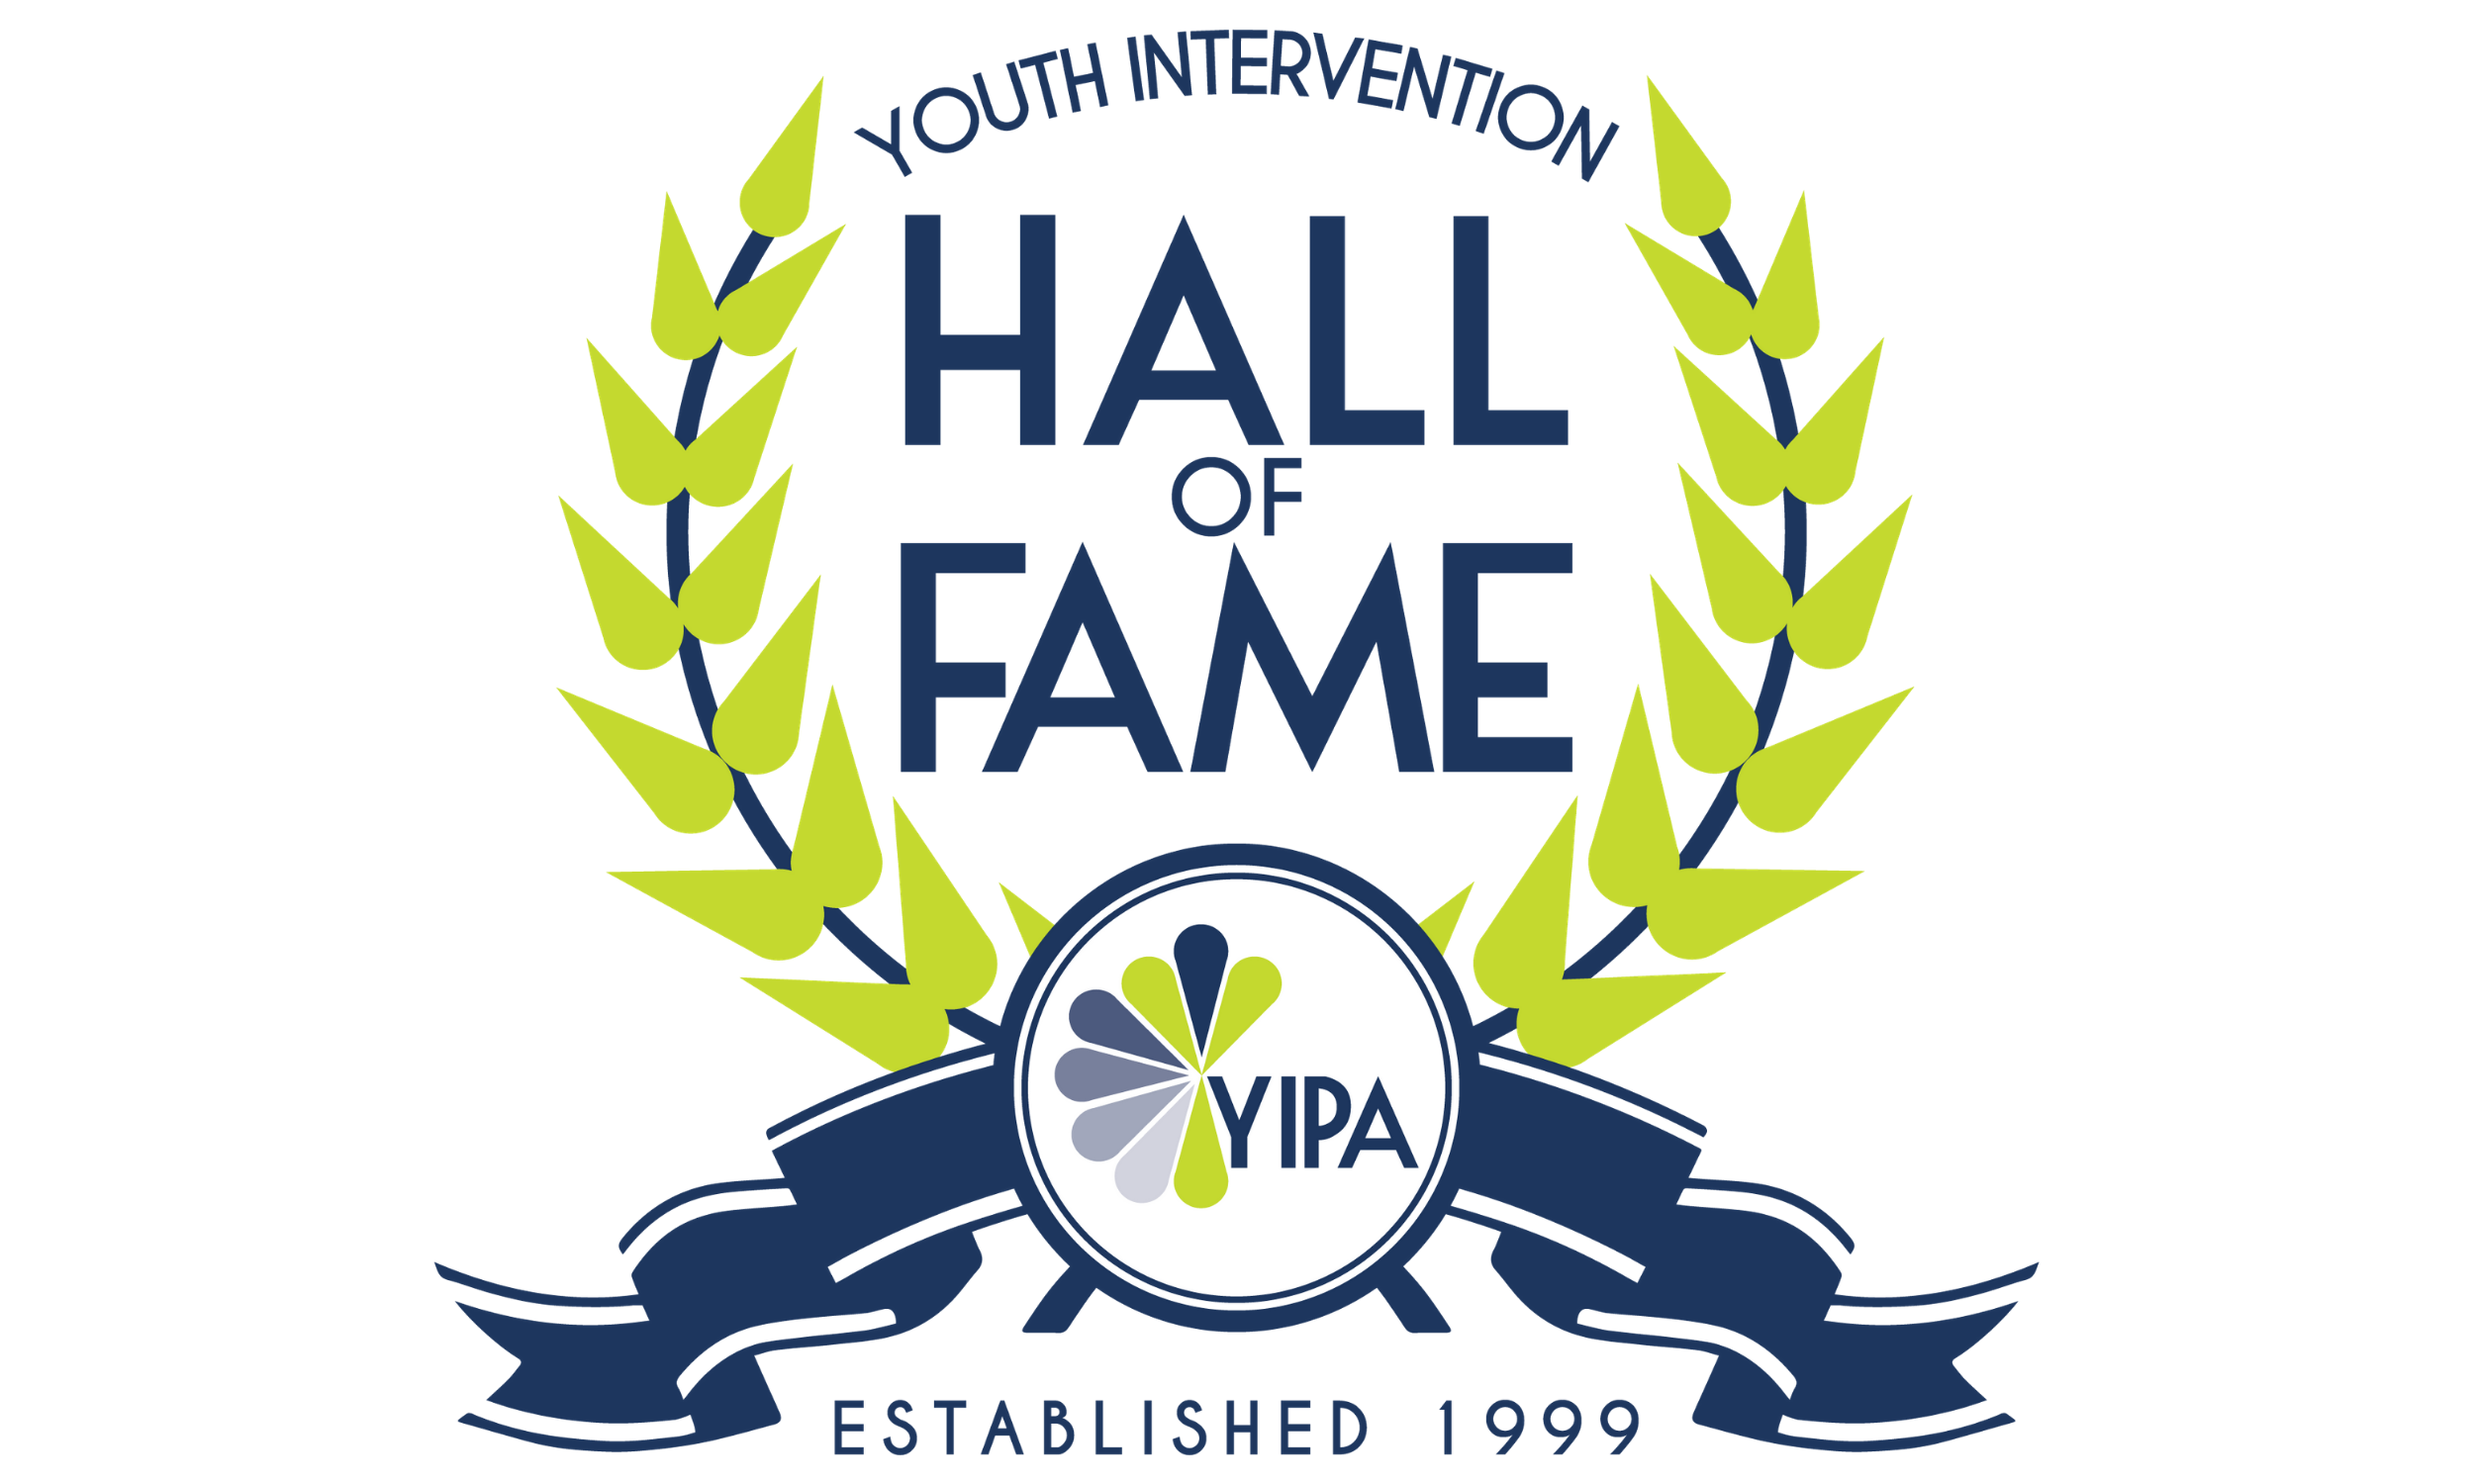 Youth intervention hall of fame.